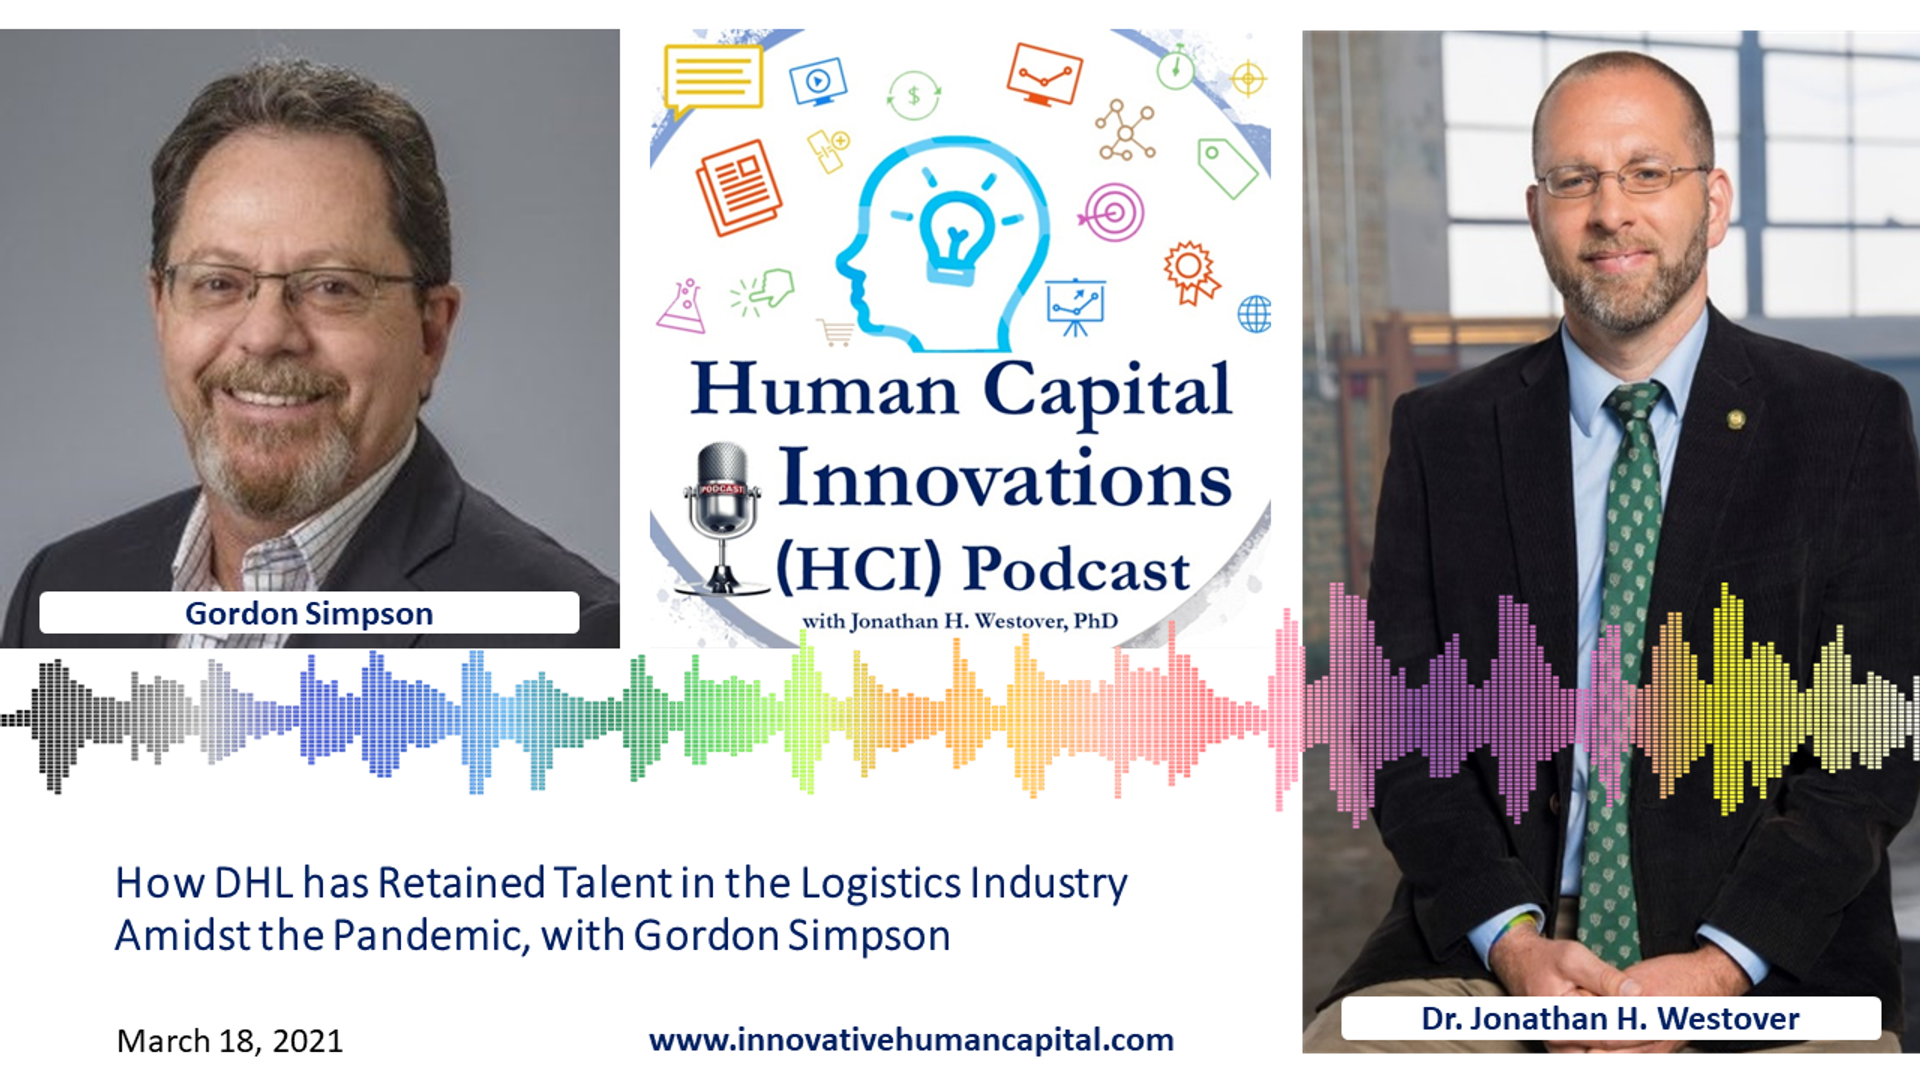 Engaging Talent in the Logistics Industry Amidst the Pandemic